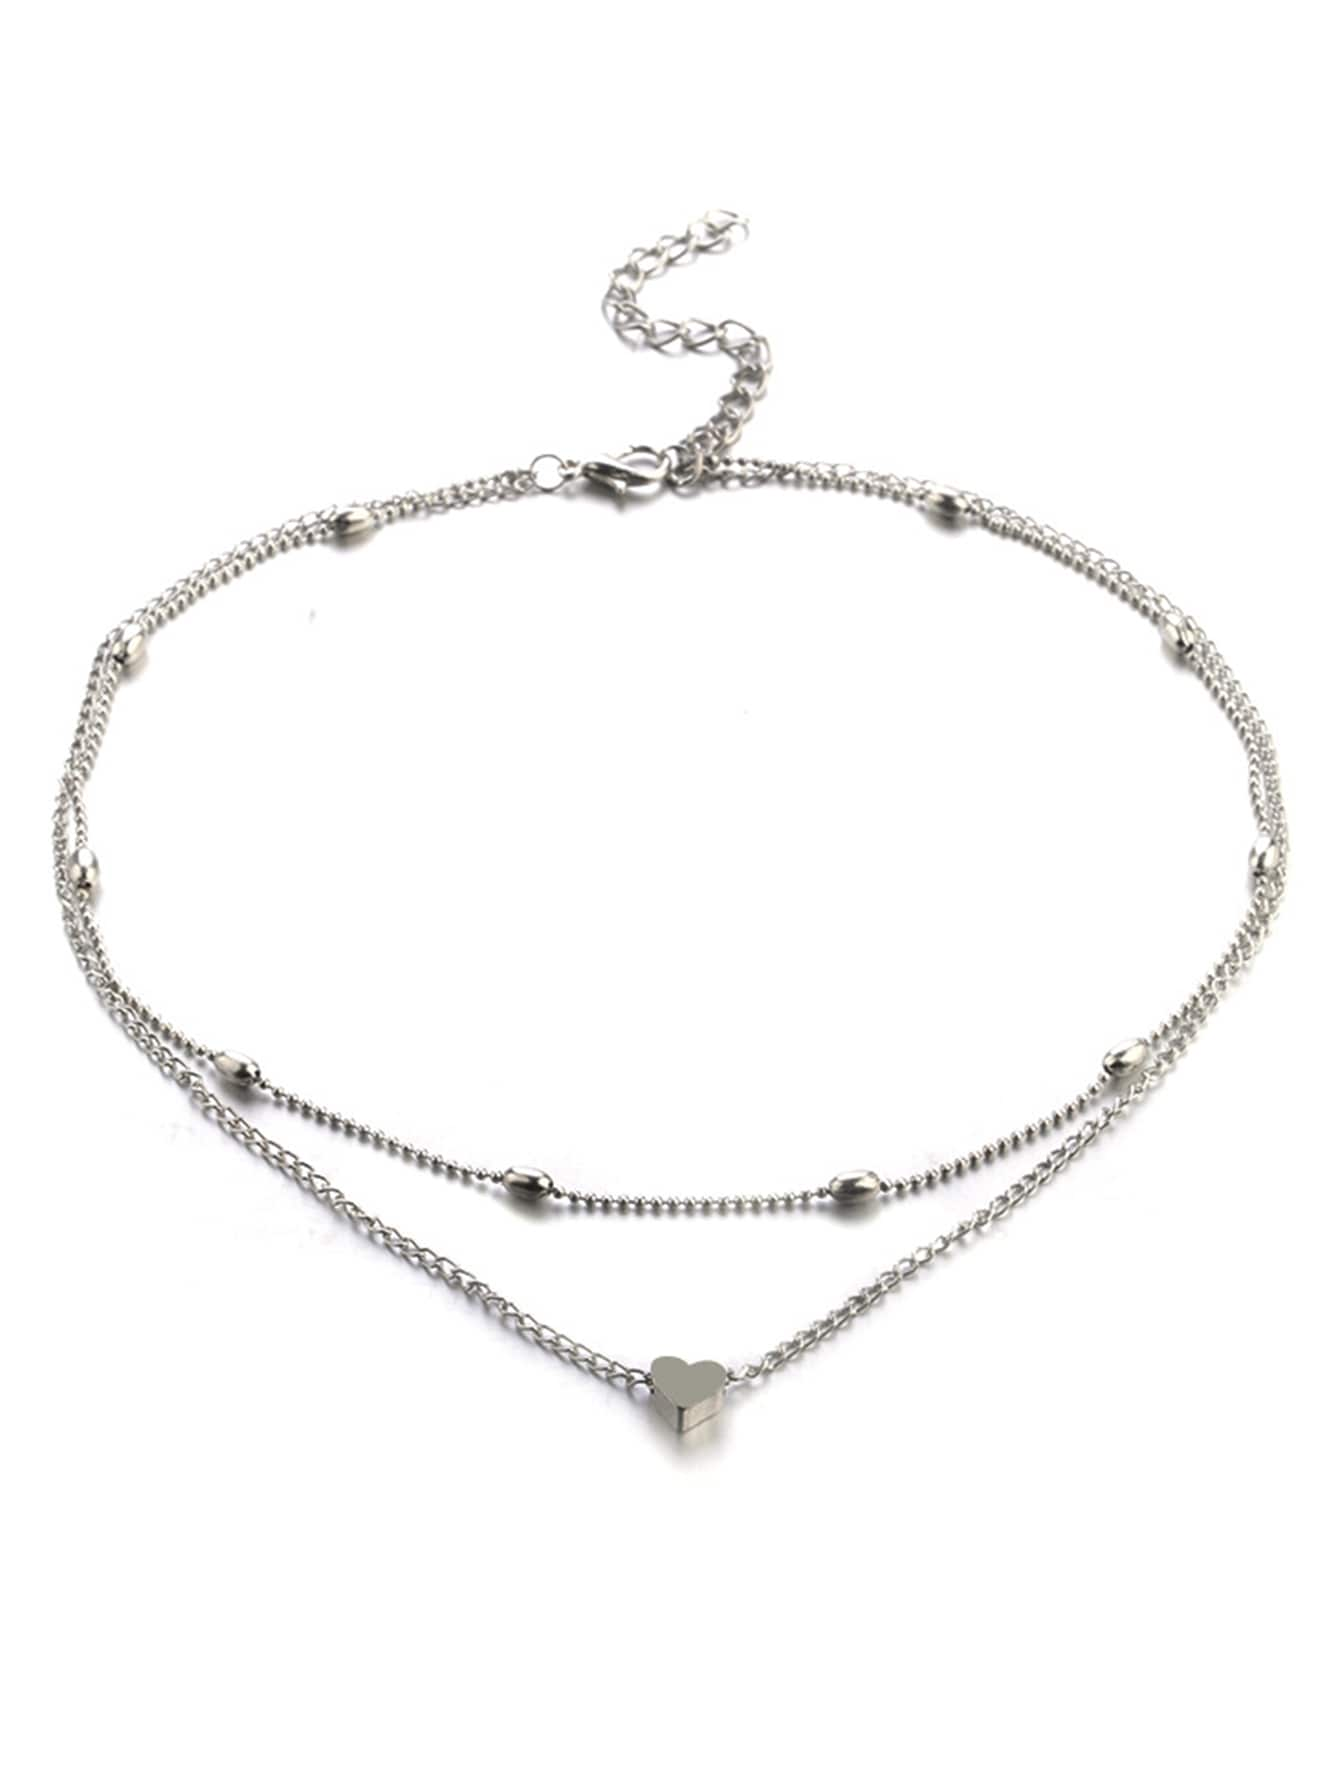 Heart Detail Layered Chain Necklace - Miranda's Paparazzi Style